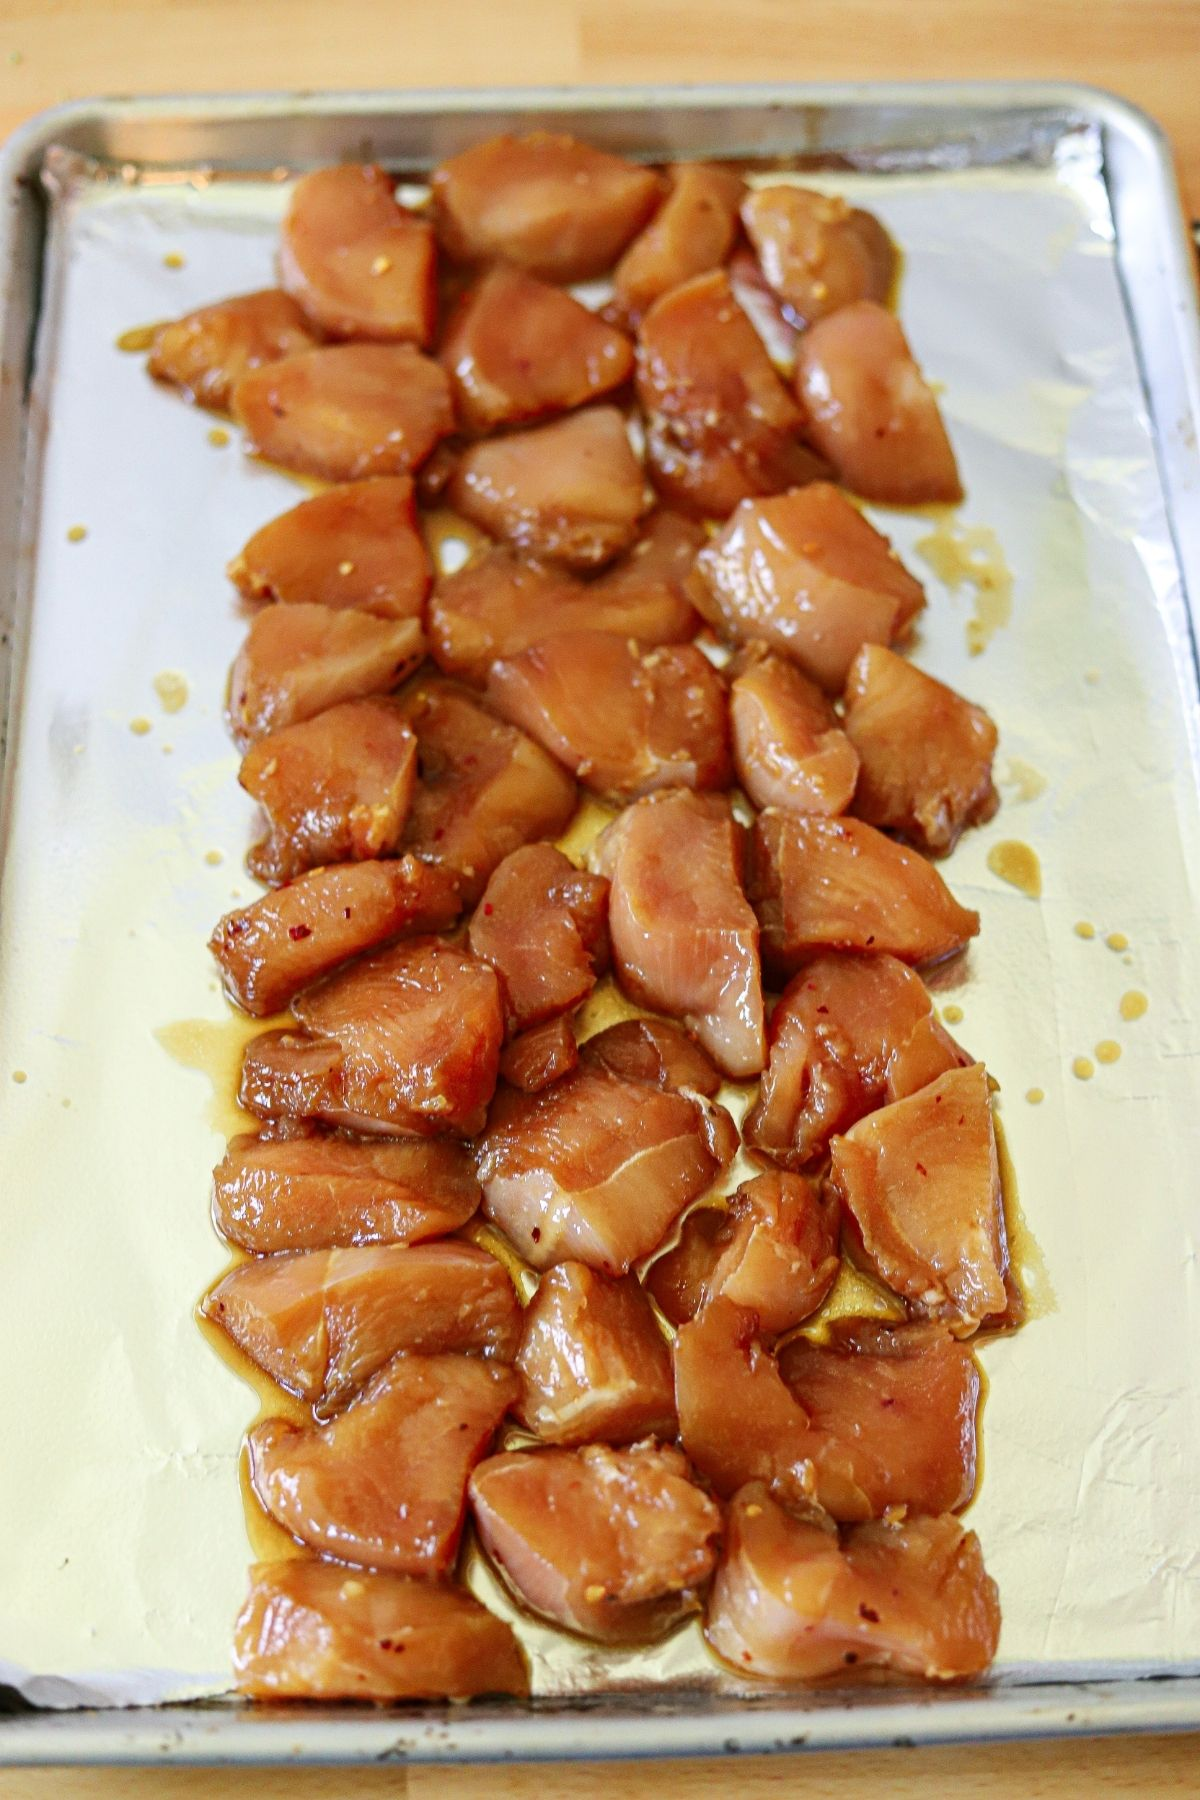 marinated chicken breast pieces in a single layer on a sheet pan.